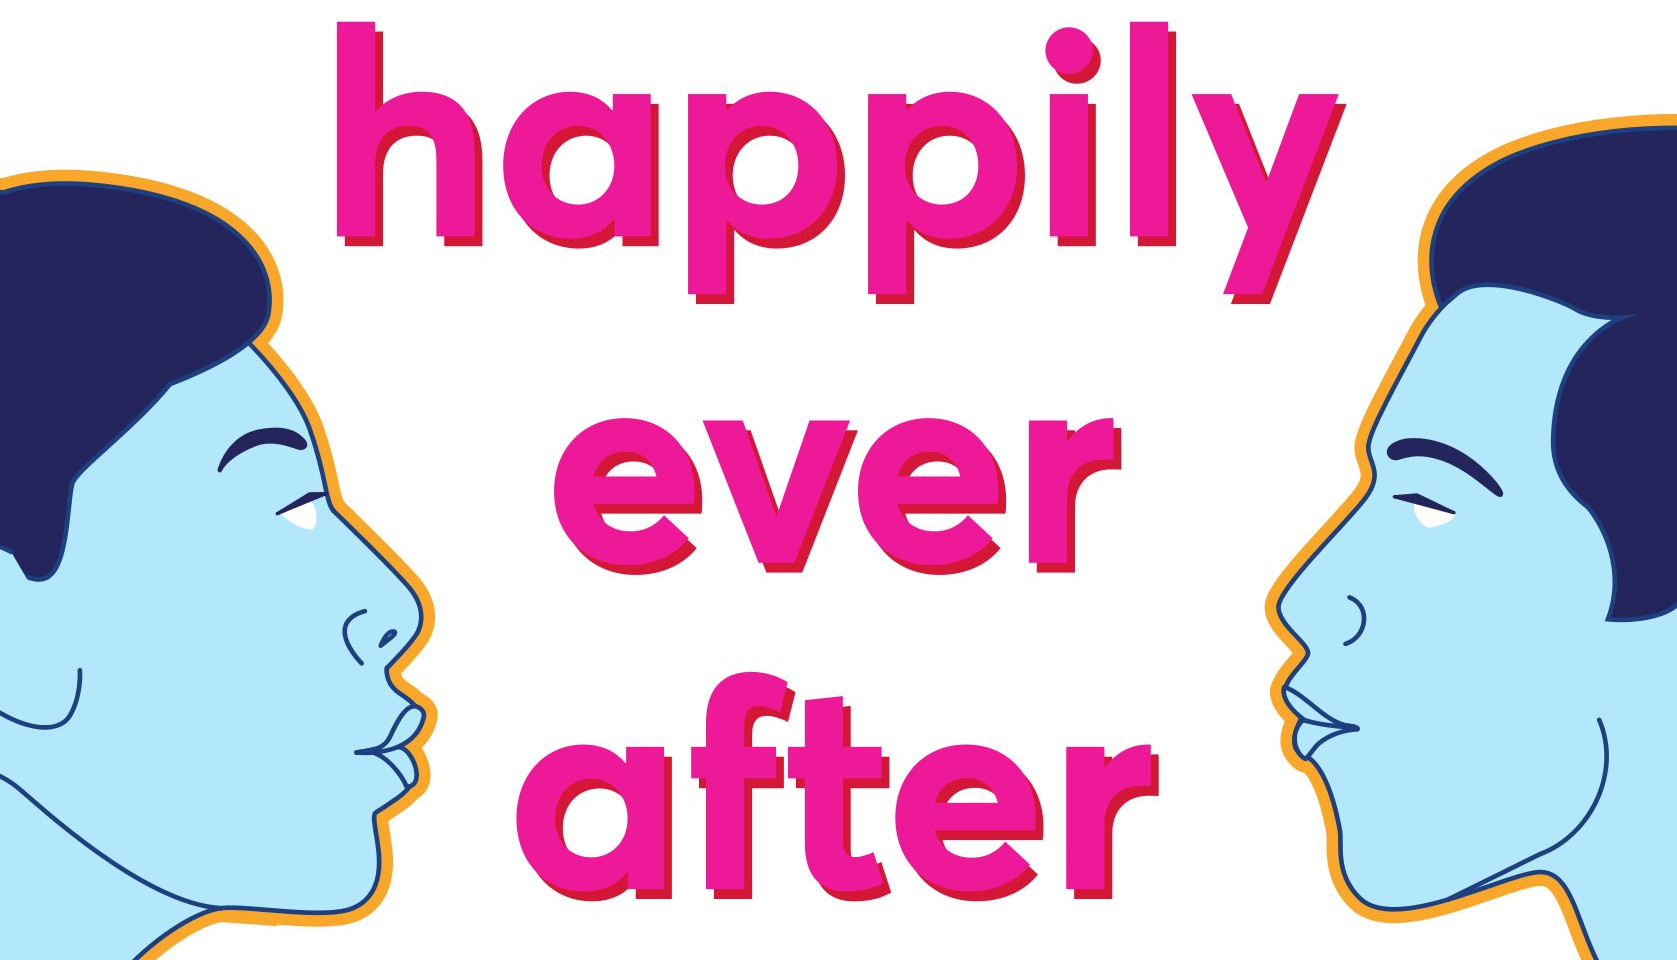 living happily ever after